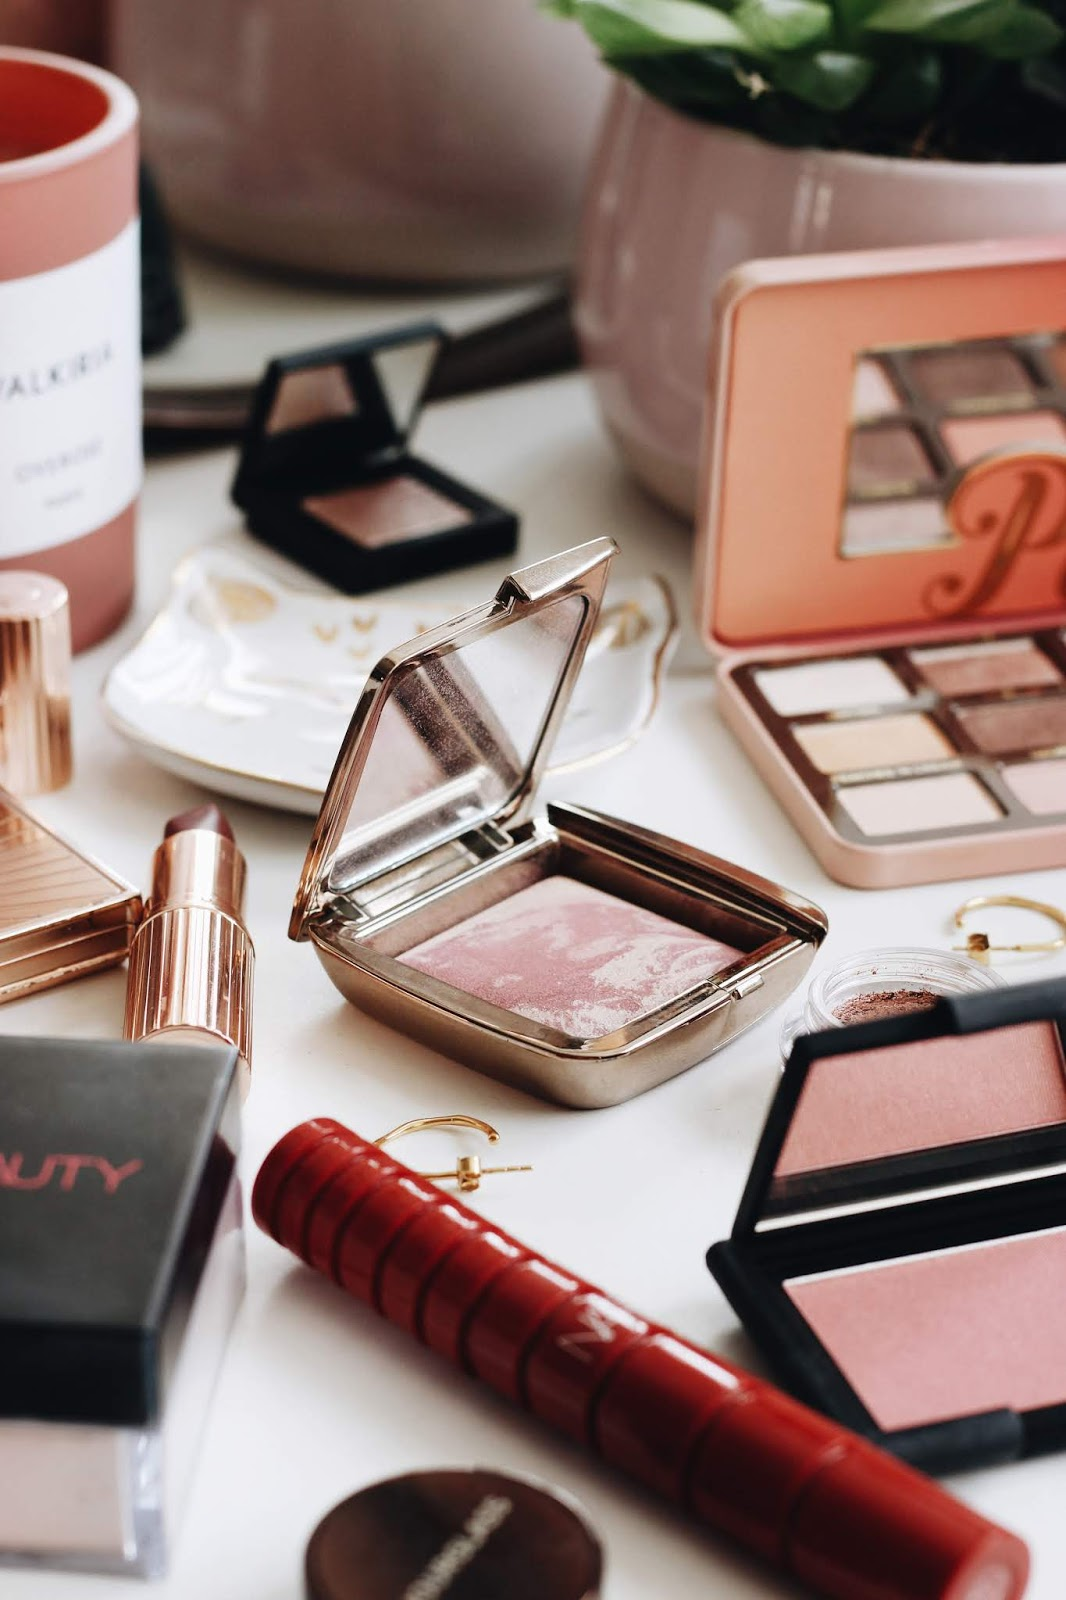 5 Top High End Makeup Brands